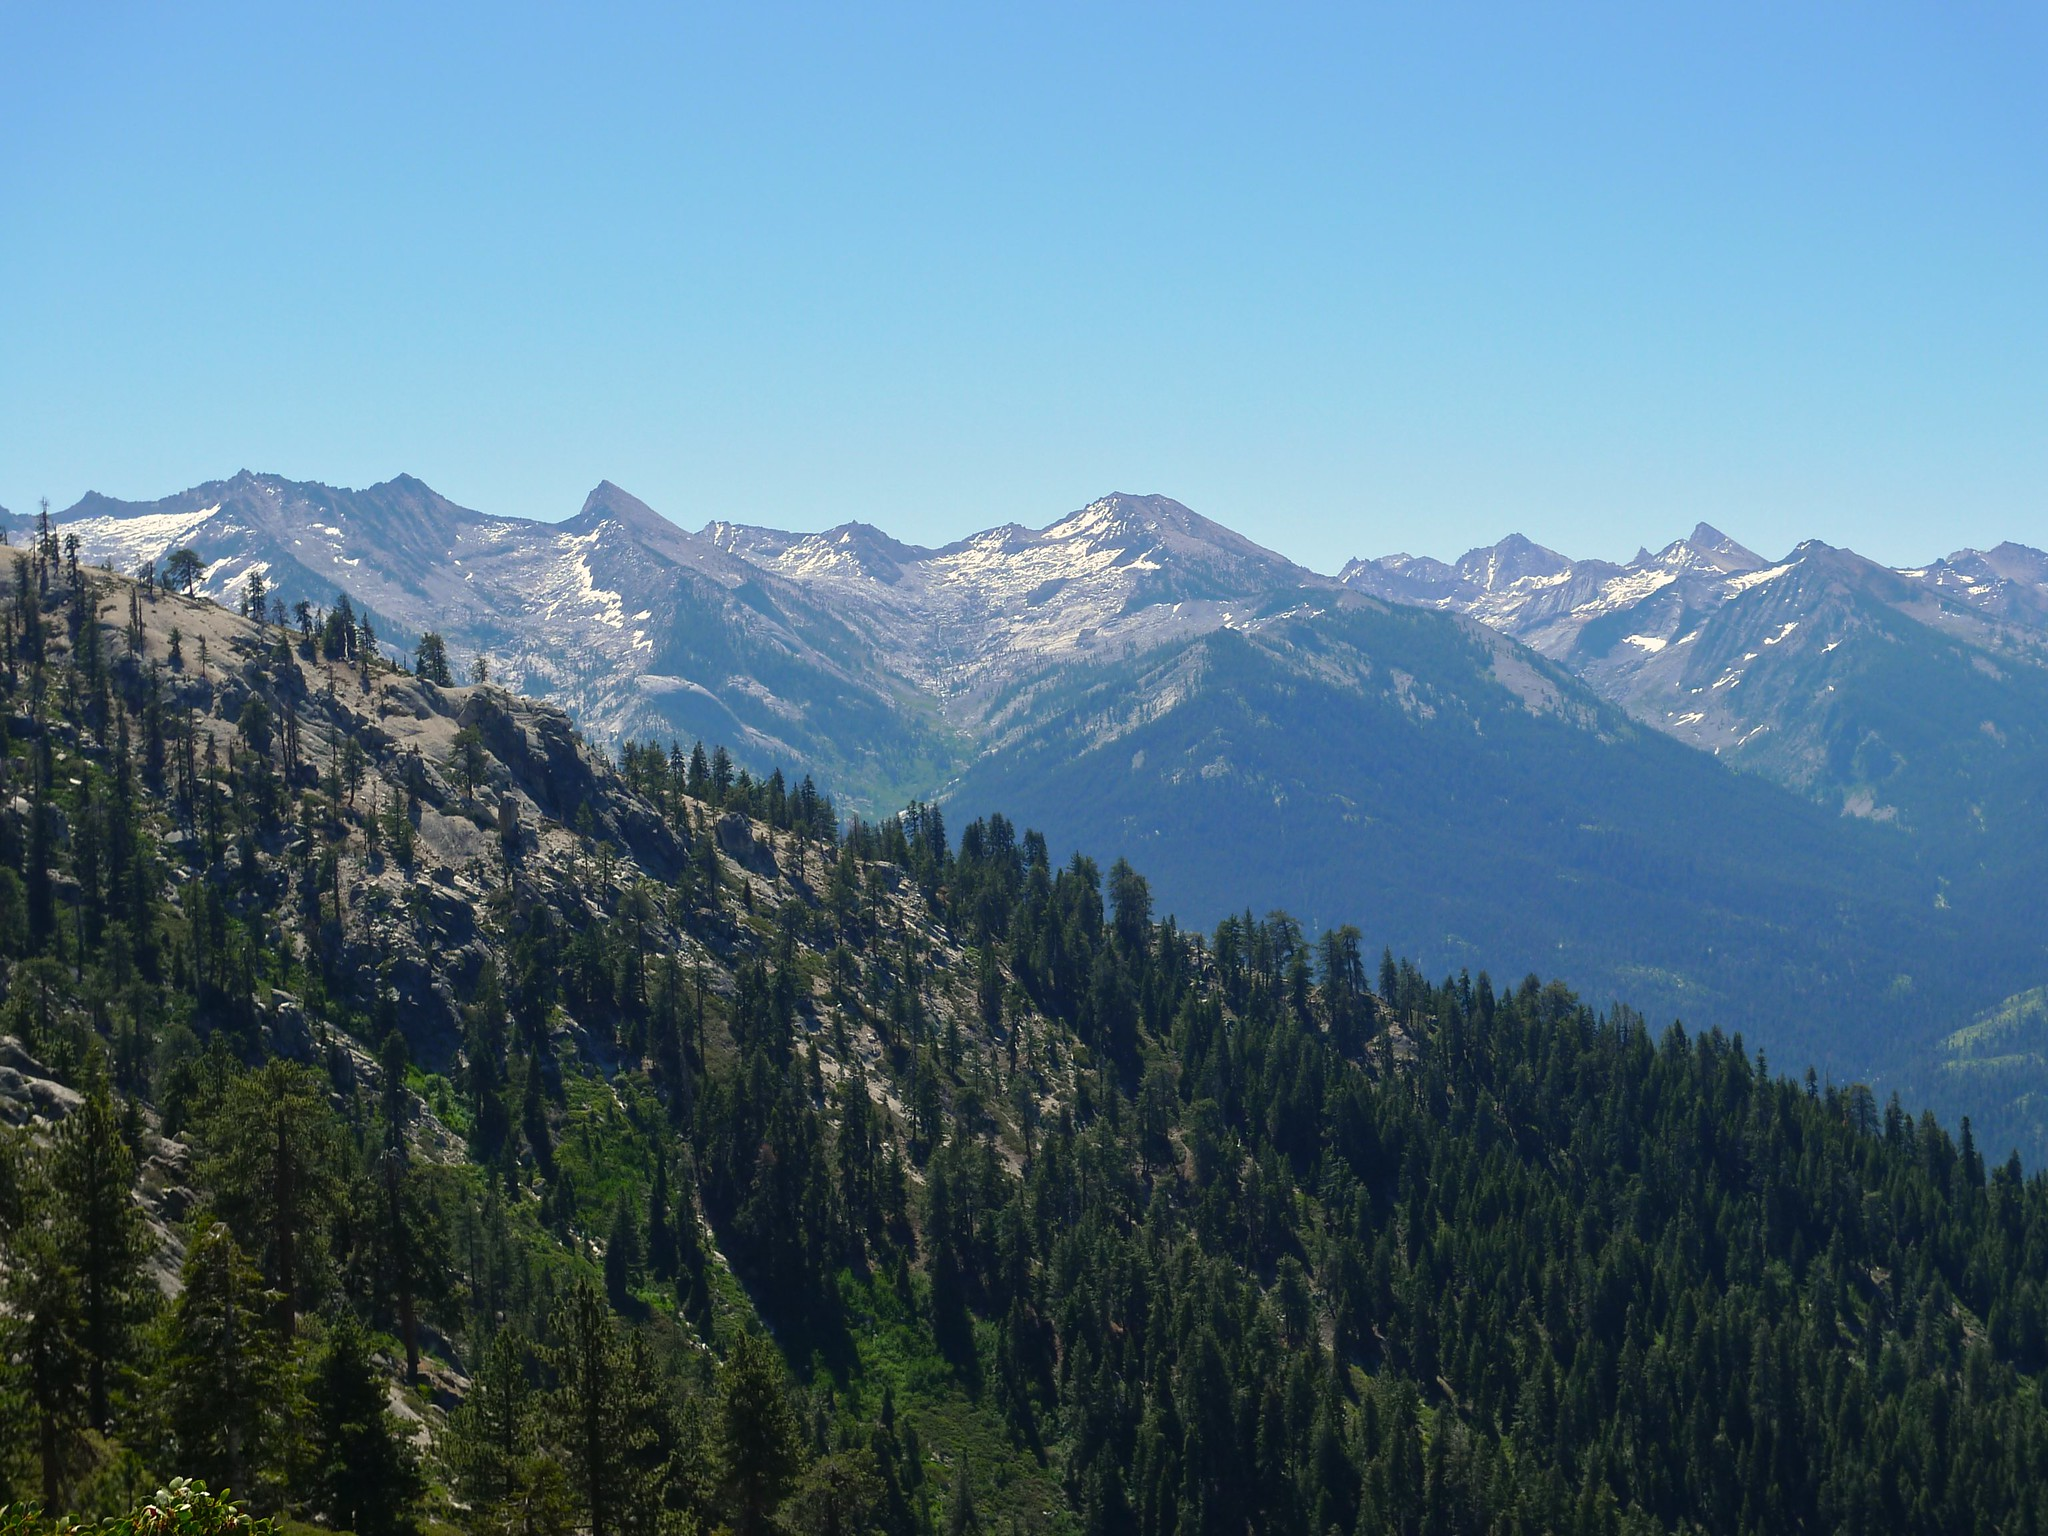 First view of the Great Western Divide from Panther Gap